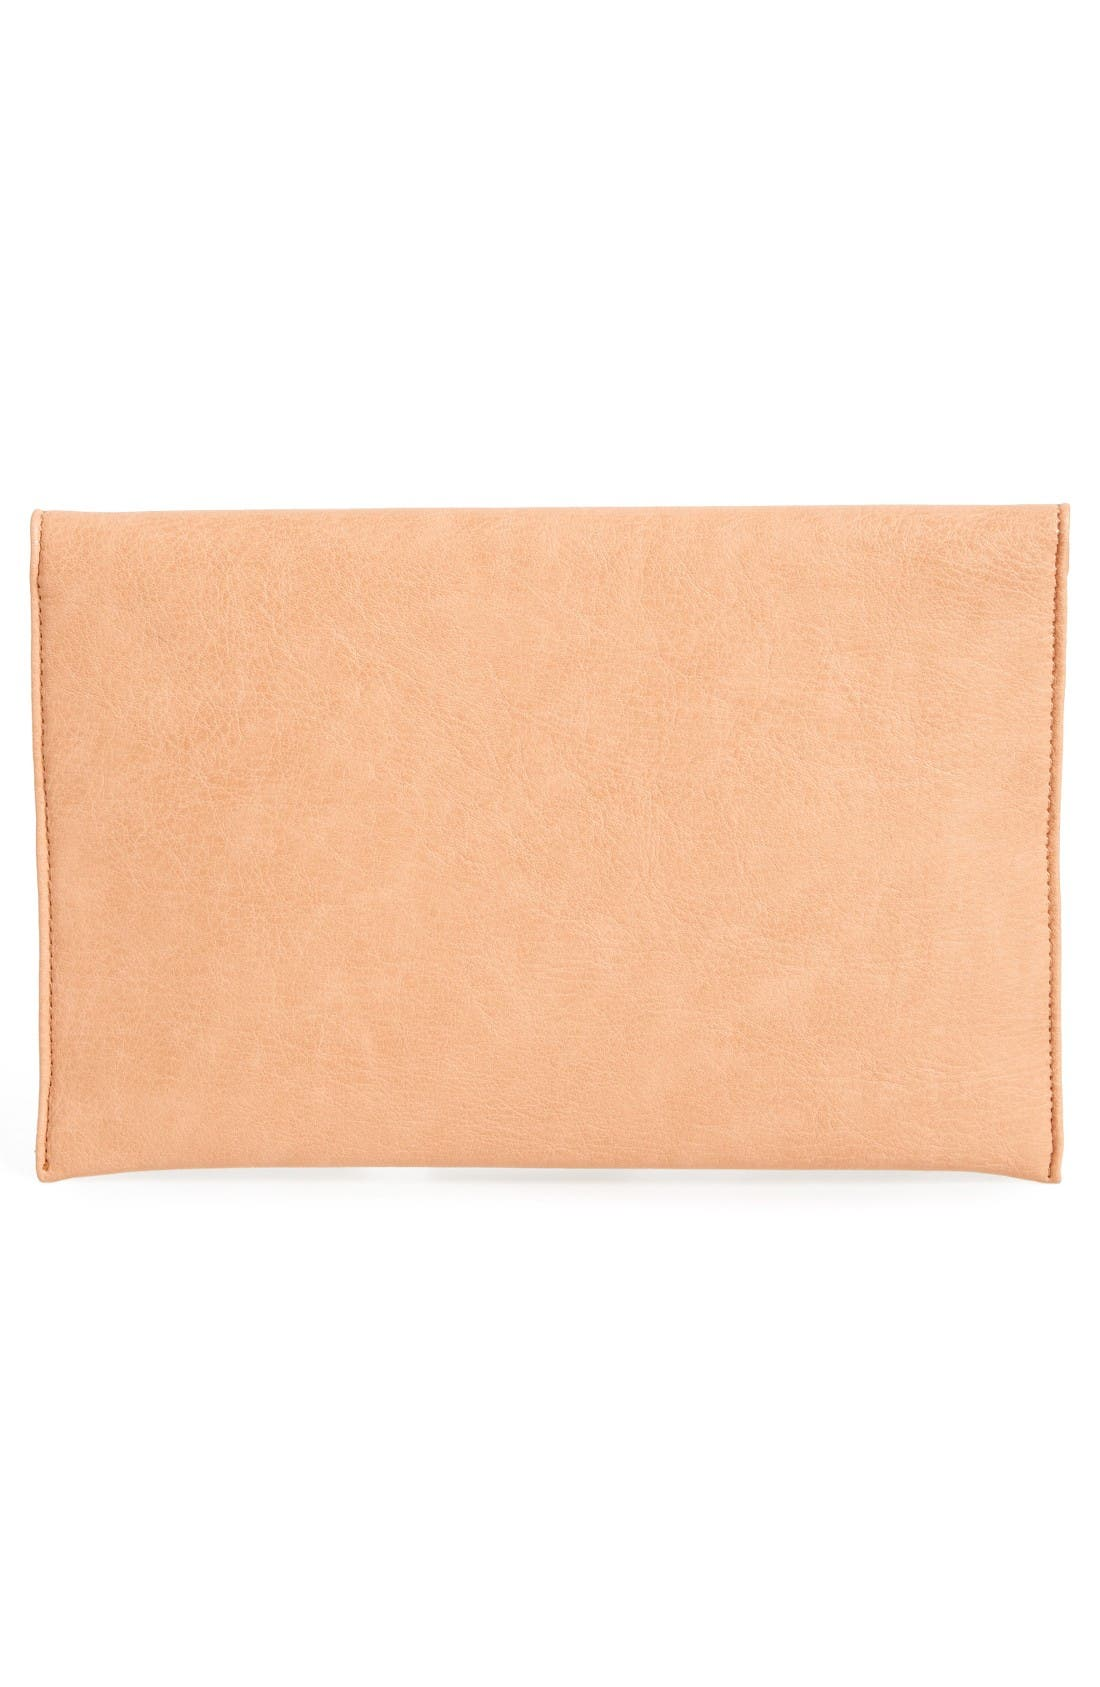 Faux Leather Envelope Clutch,                             Alternate thumbnail 3, color,                             Beige